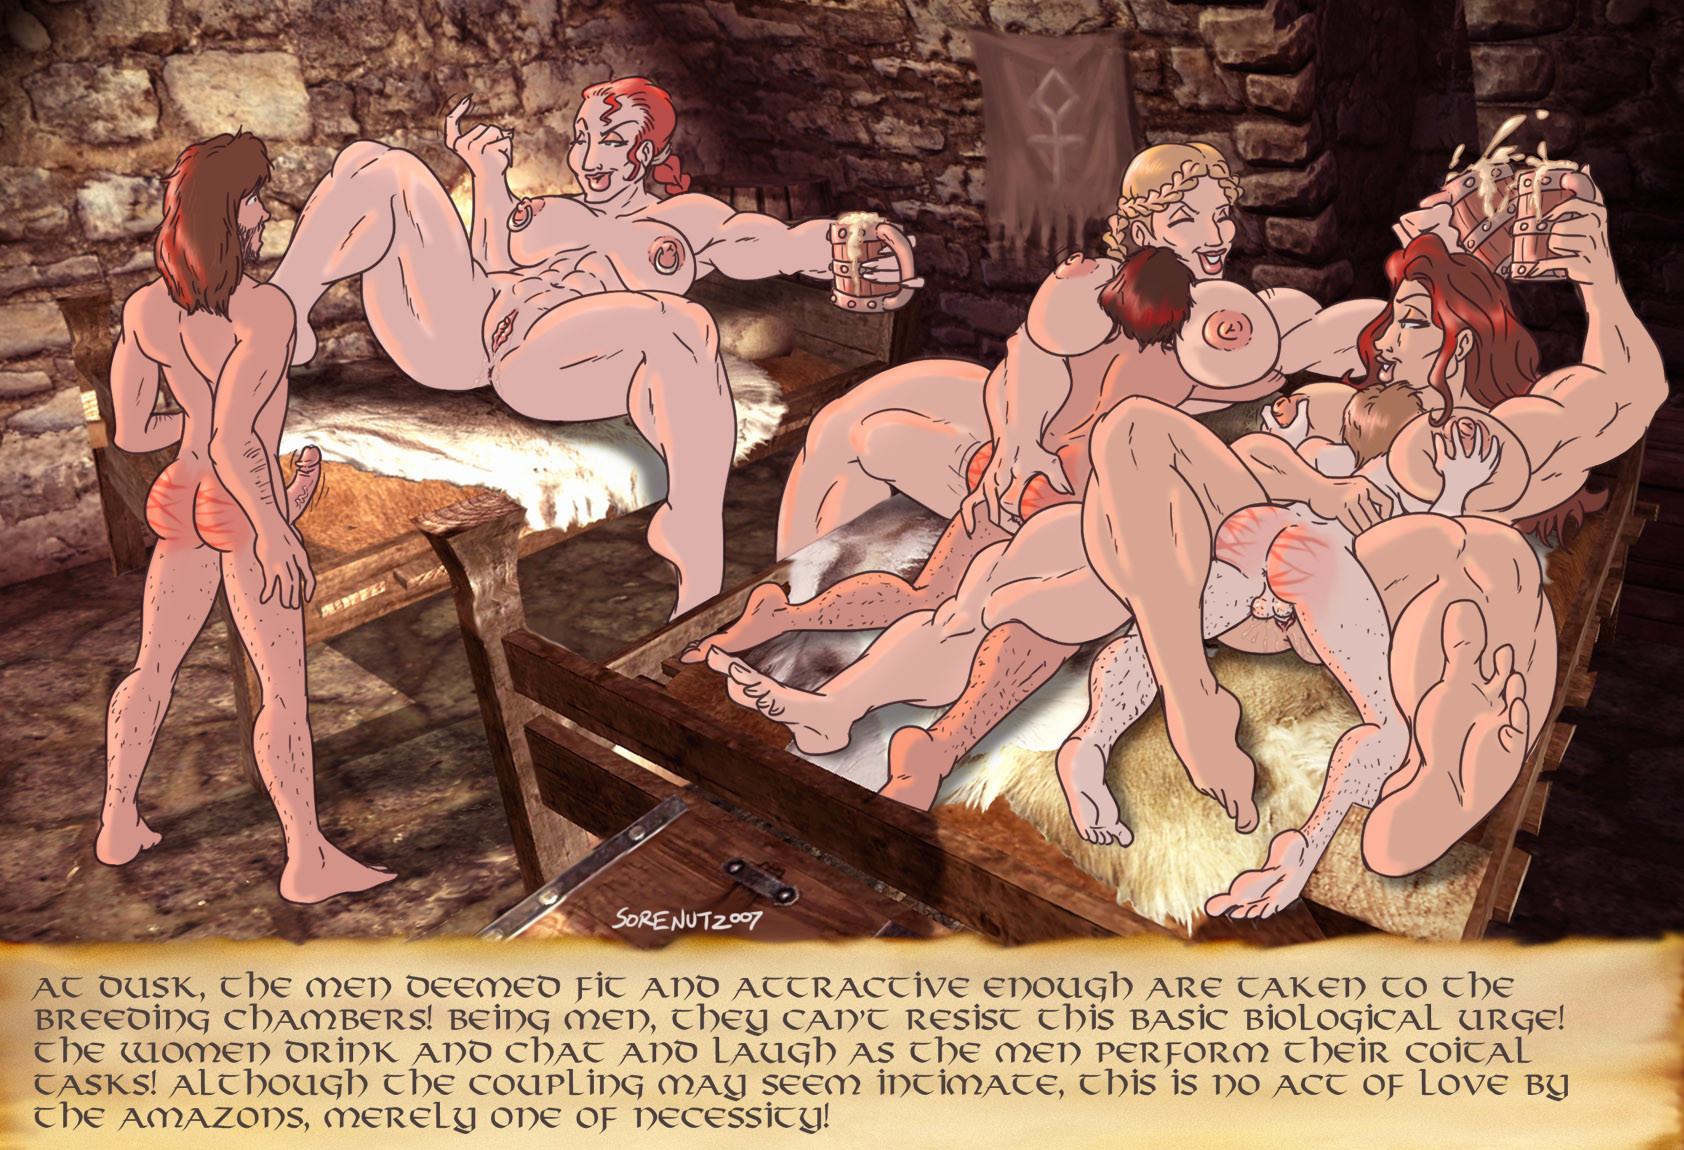 castration-illustration-13